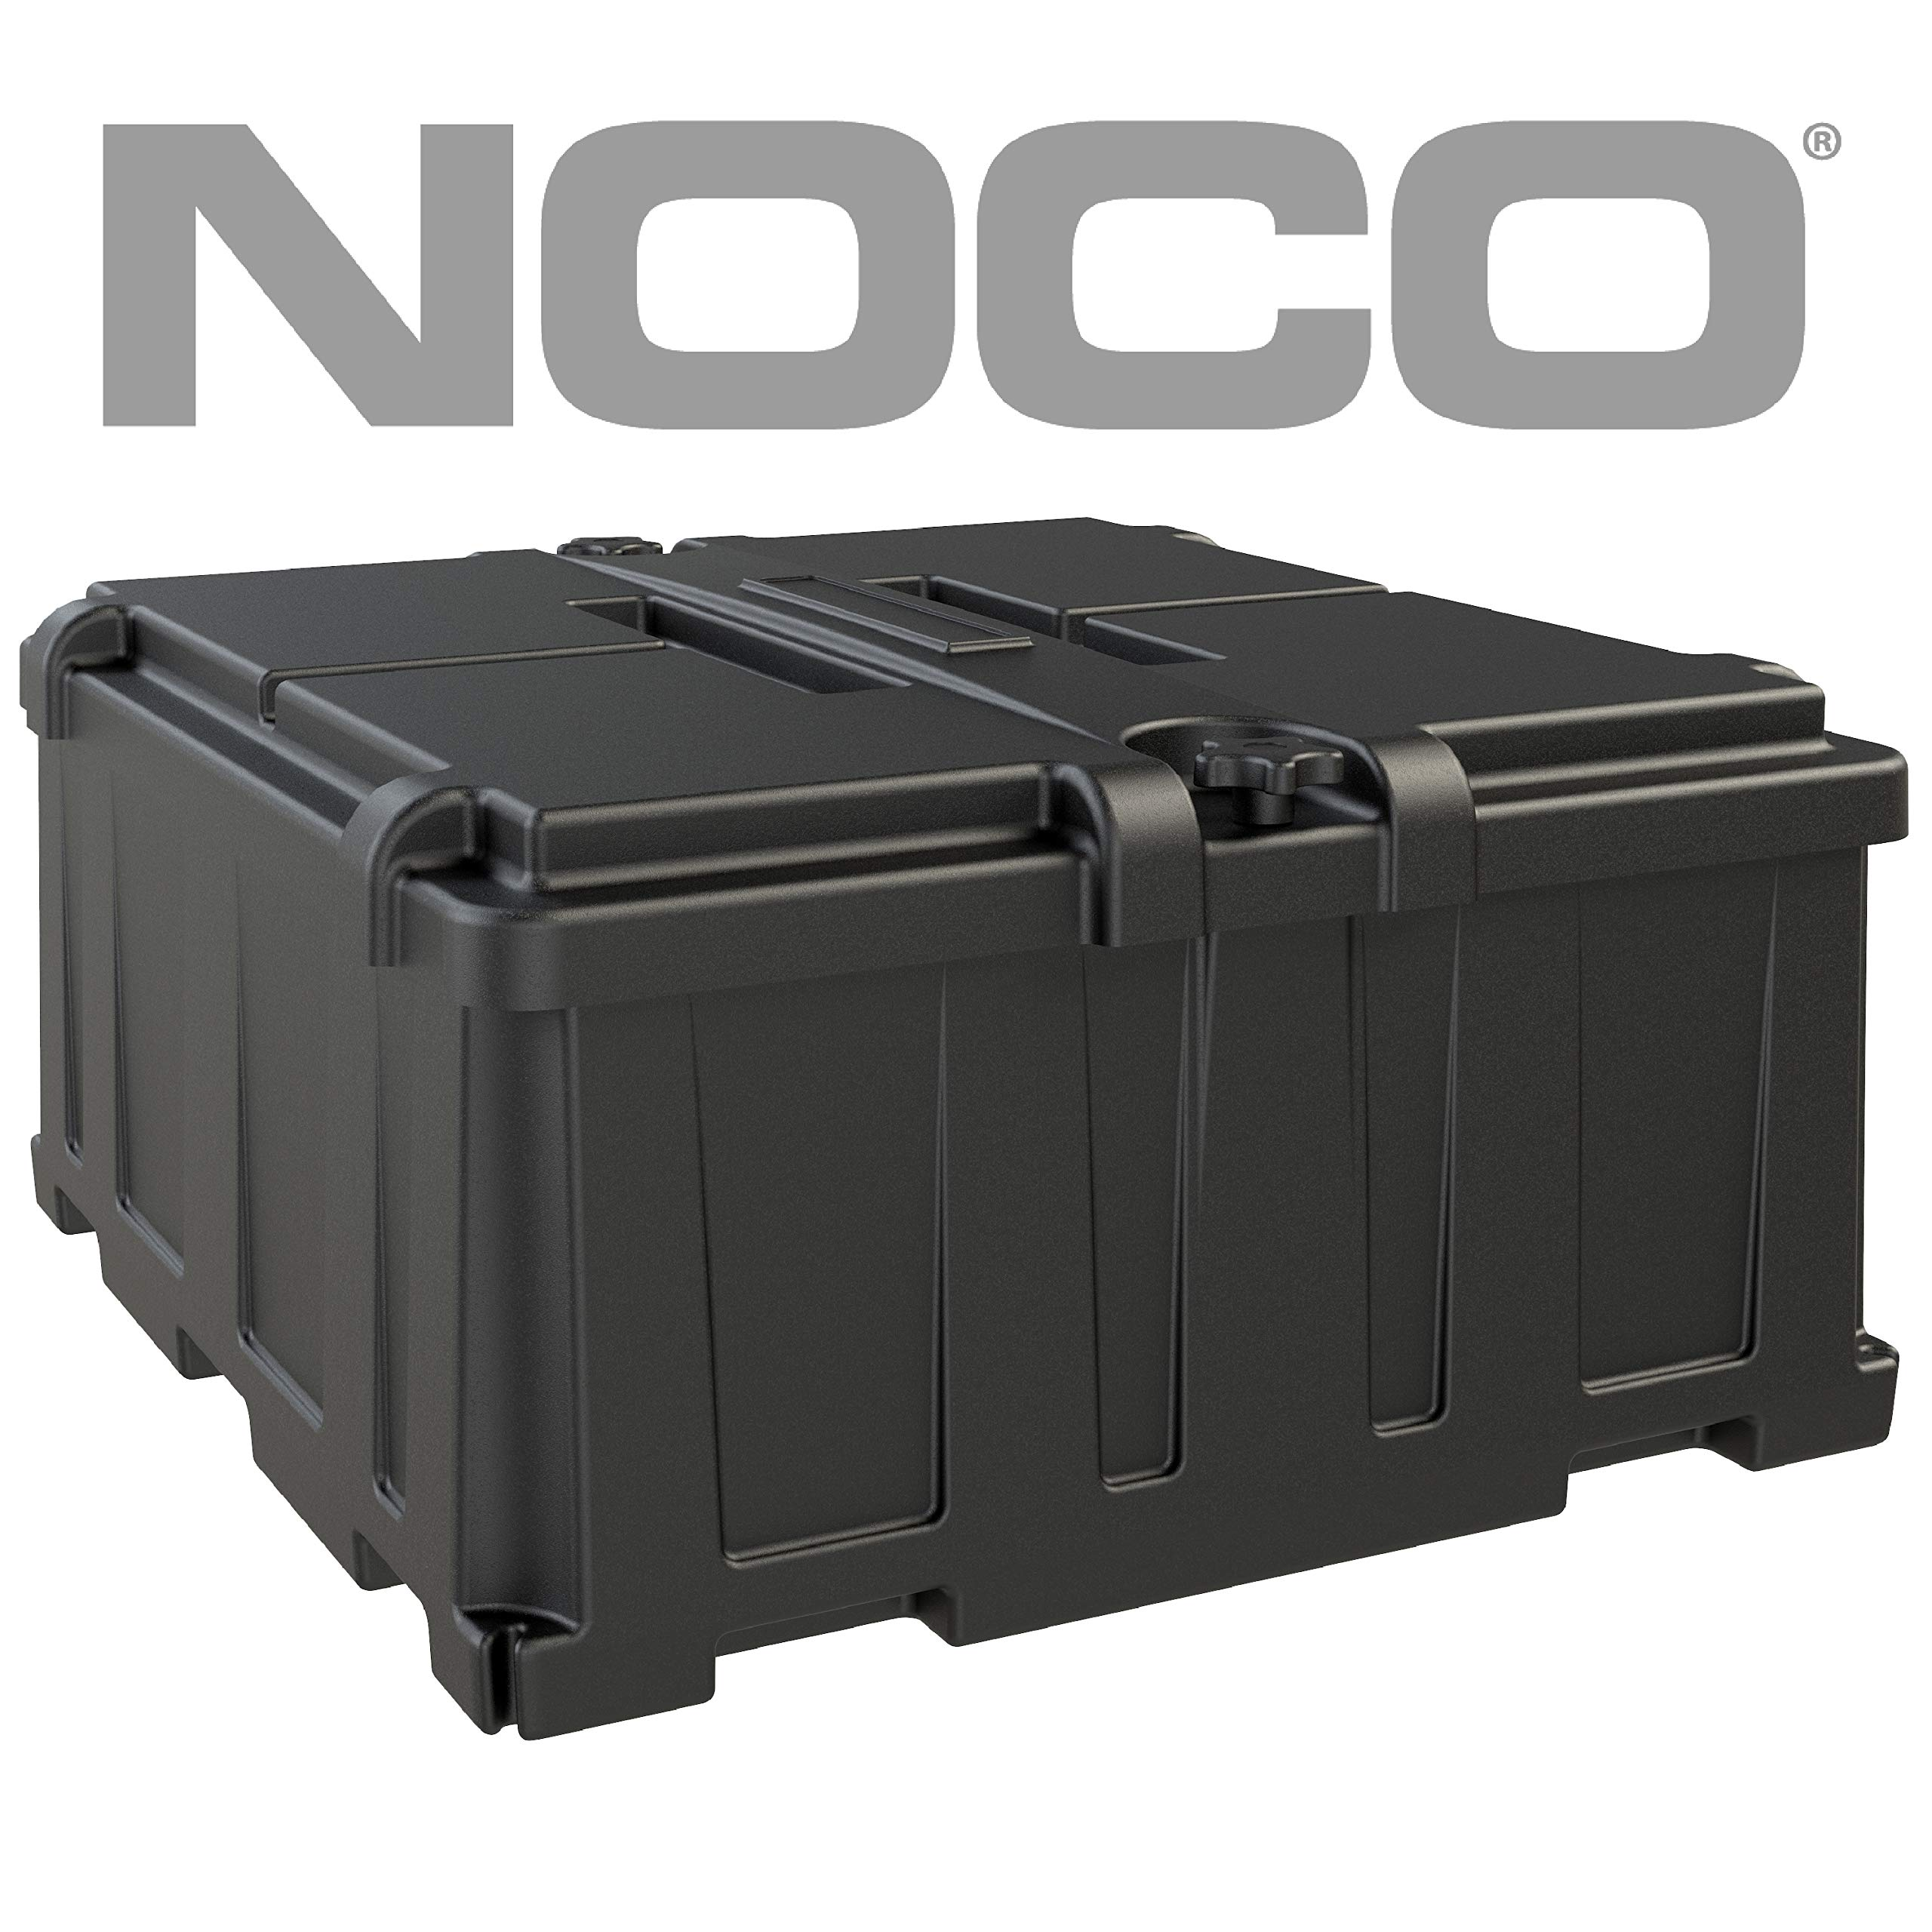 NOCO HM485 Dual 8D Commercial Grade Battery Box for Automotive, Marine and RV Batteries by NOCO